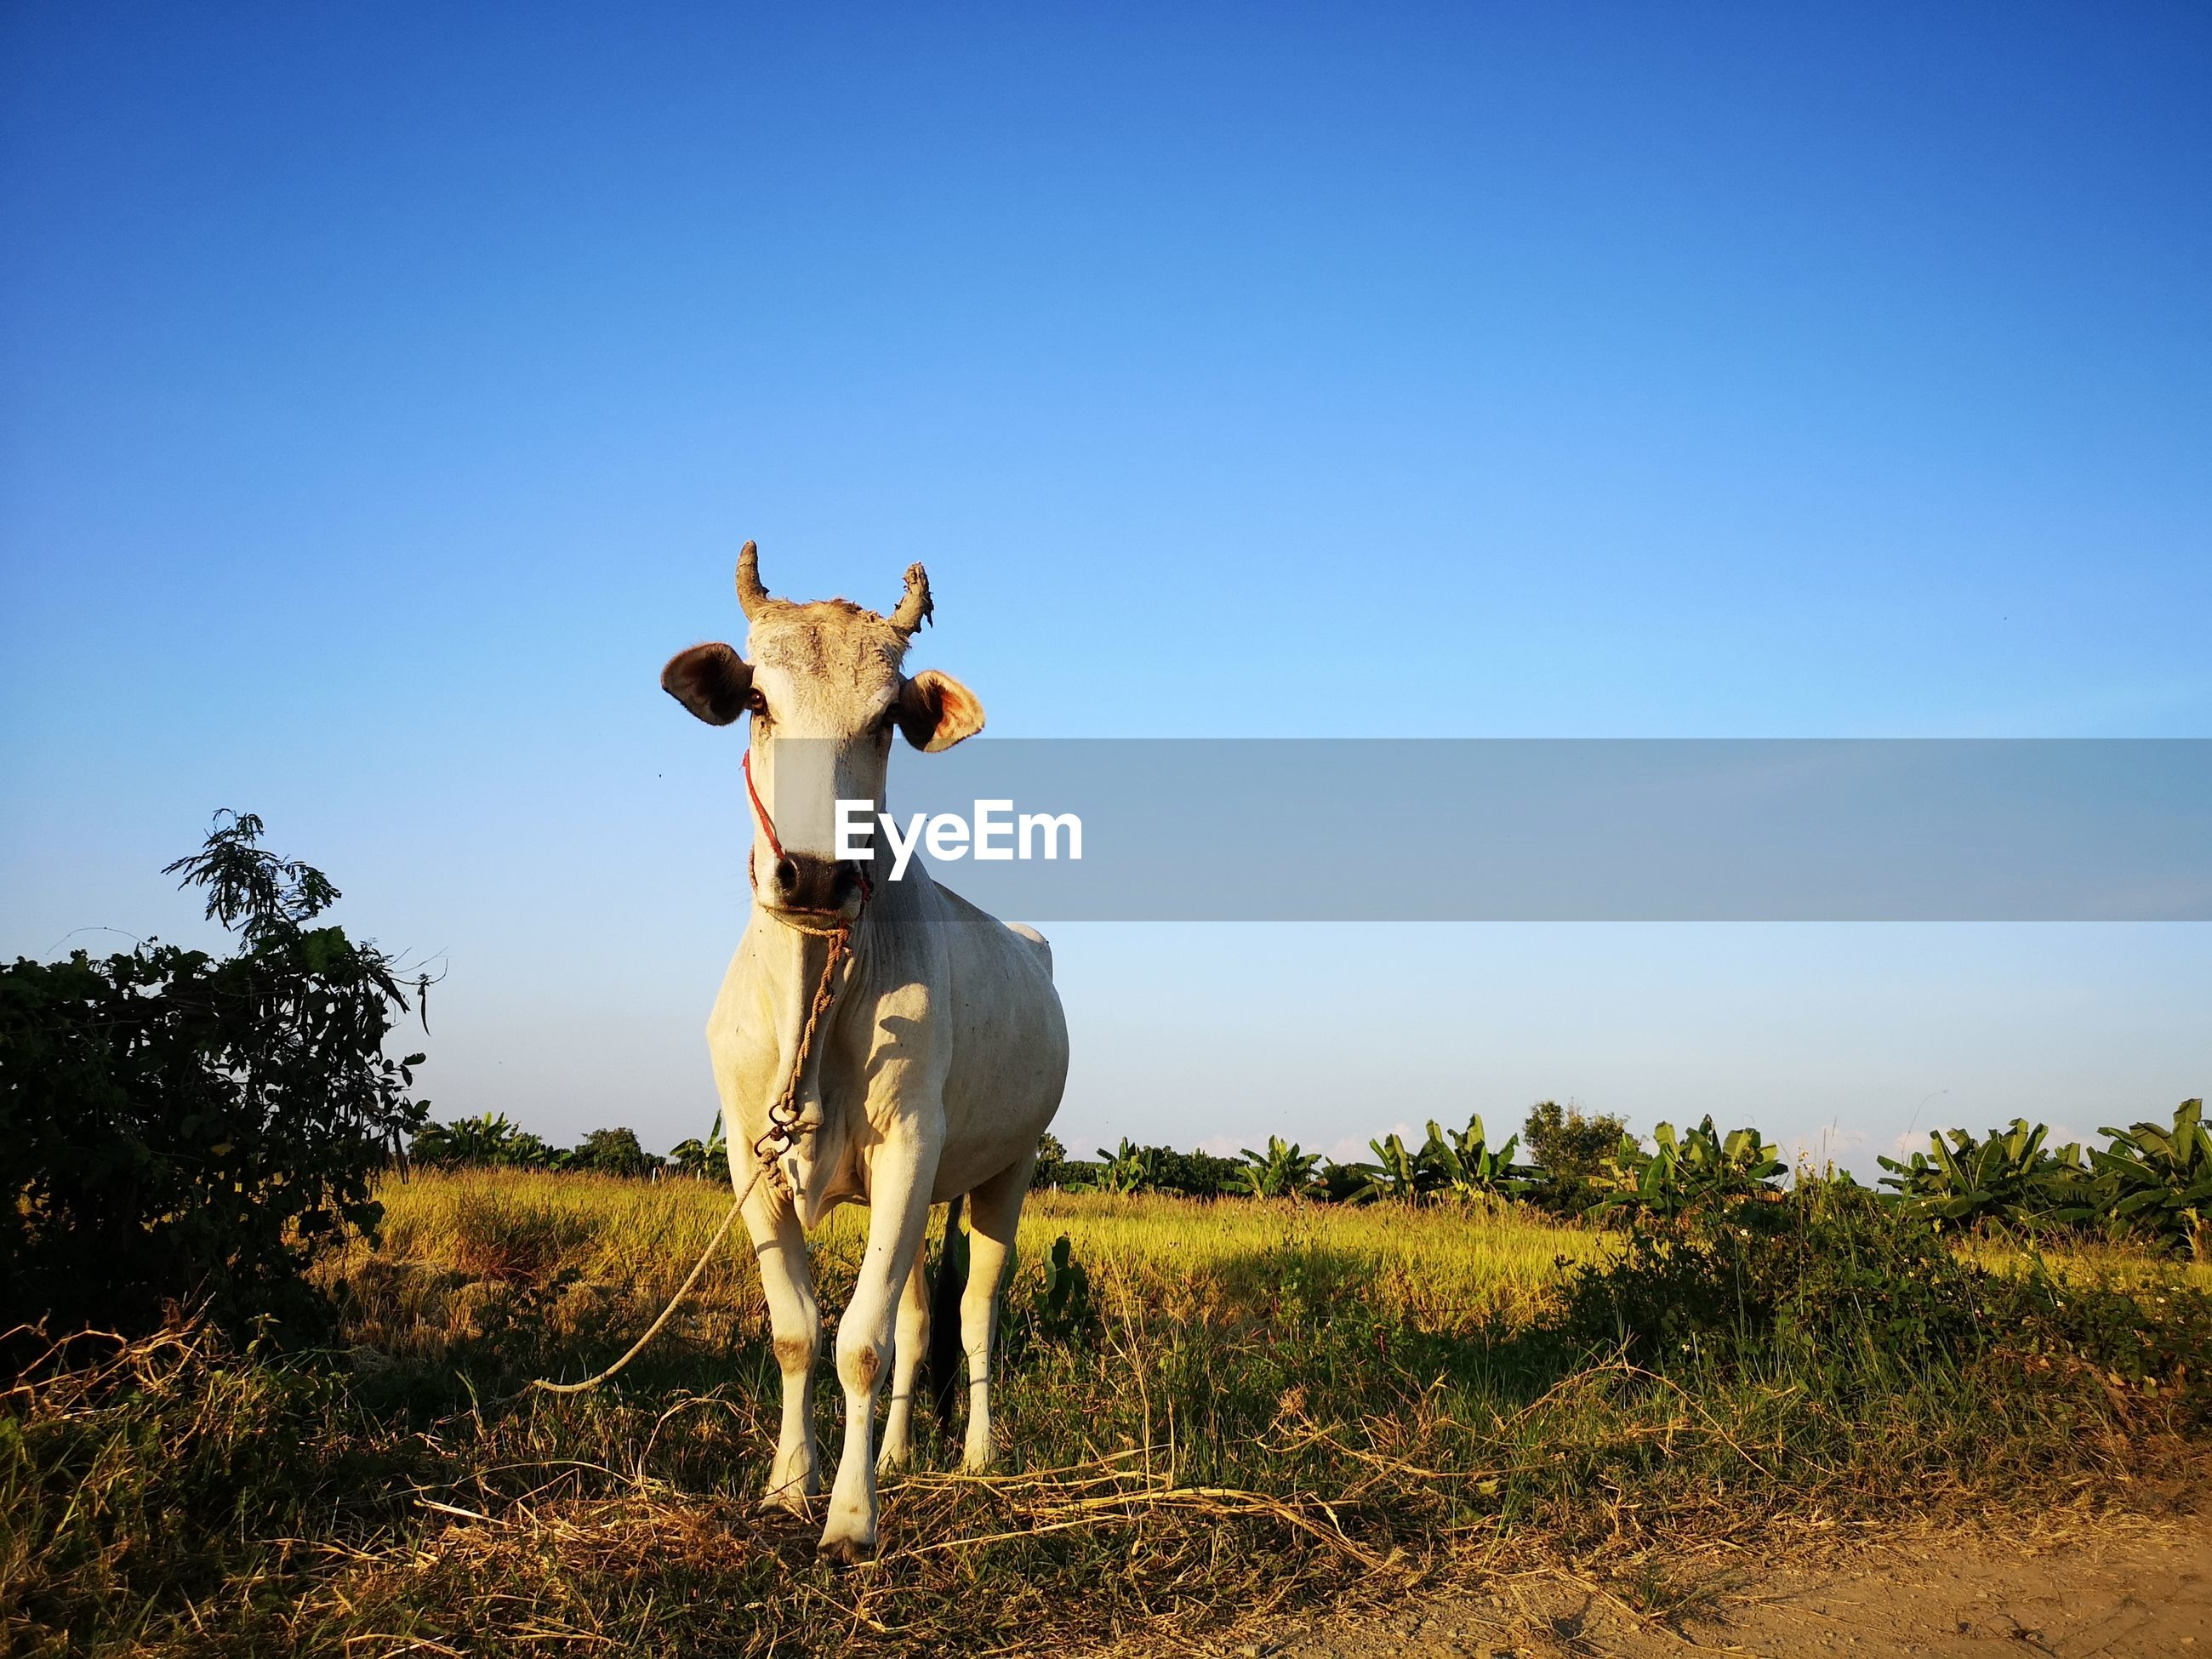 View of cow on field against sky